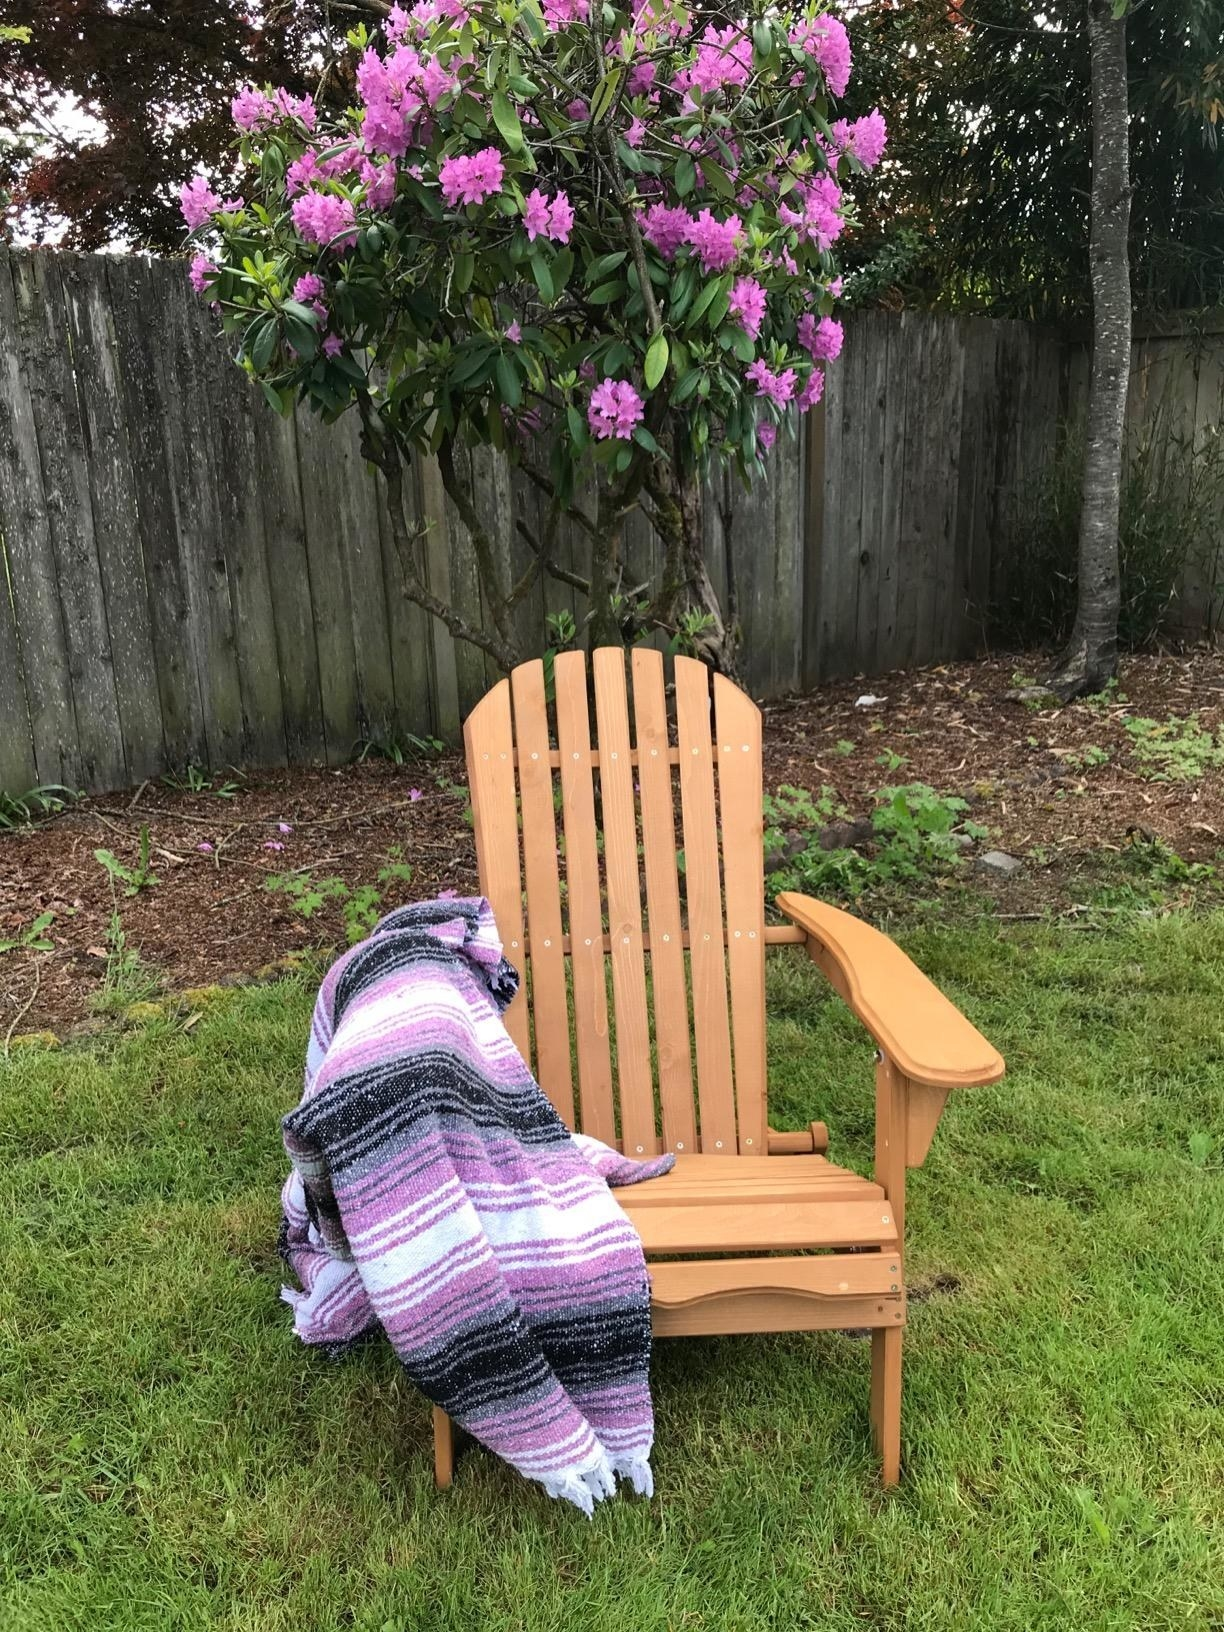 A reviewer photo of the wood chair outside, which in classic Adirondack chair style, leans back somewhat and has two big armrests